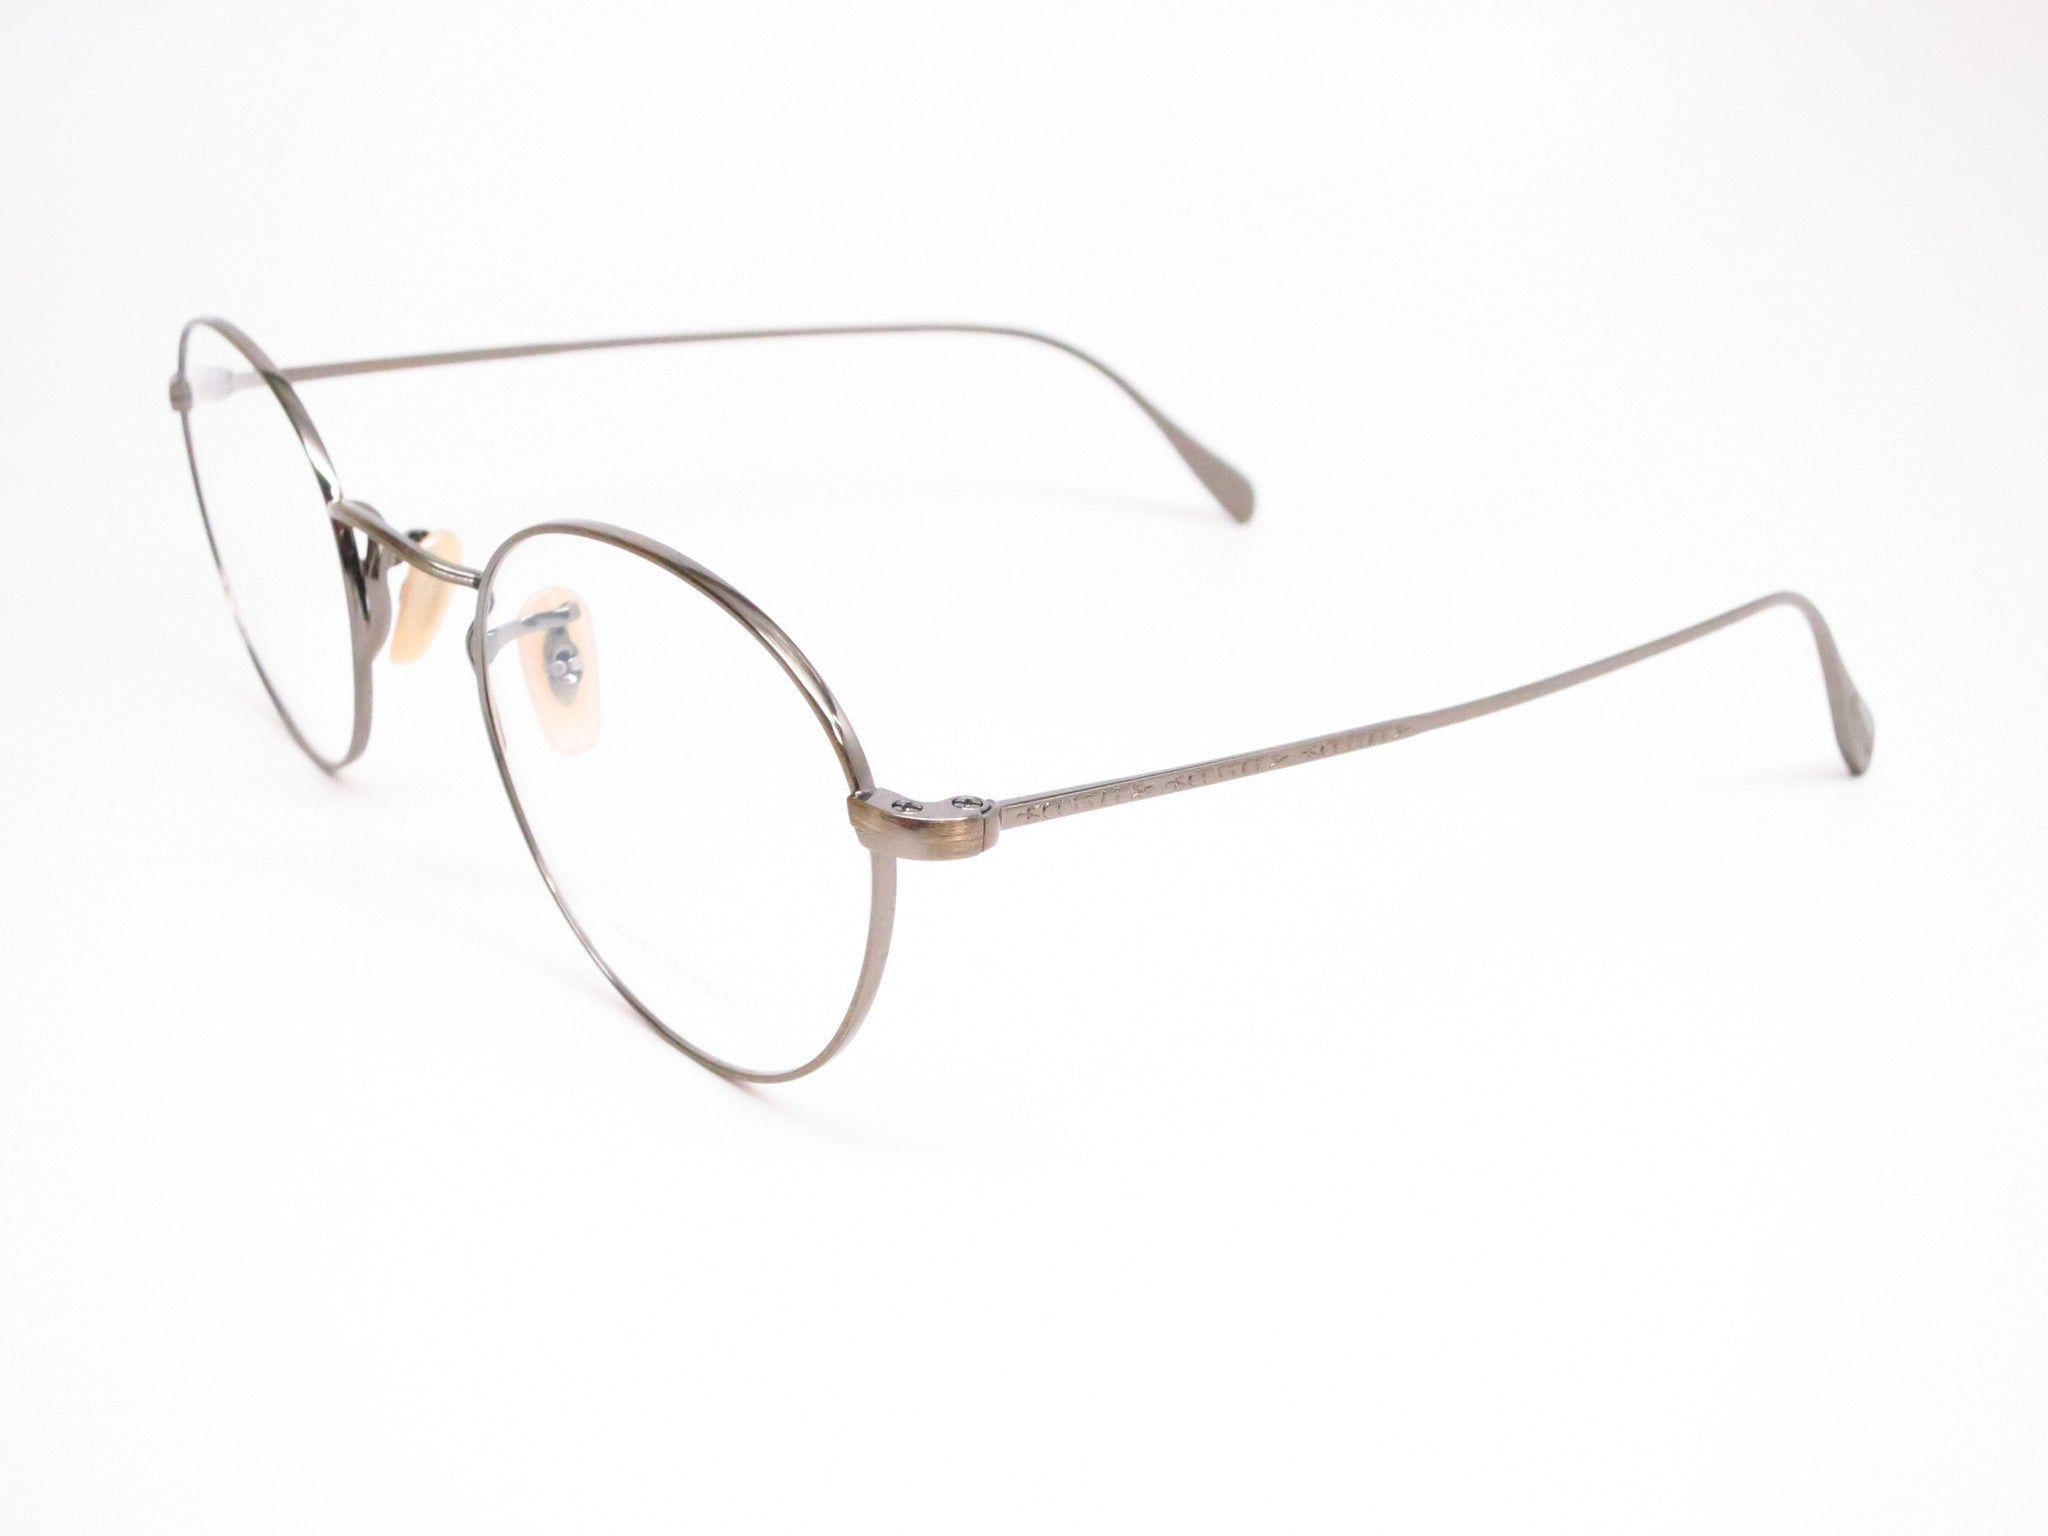 a34f4a5fd94 Oliver Peoples Coleridge OV 1186 5039 Antique Gold Eyeglasses - Eye Heart  Shades - Oliver Peoples